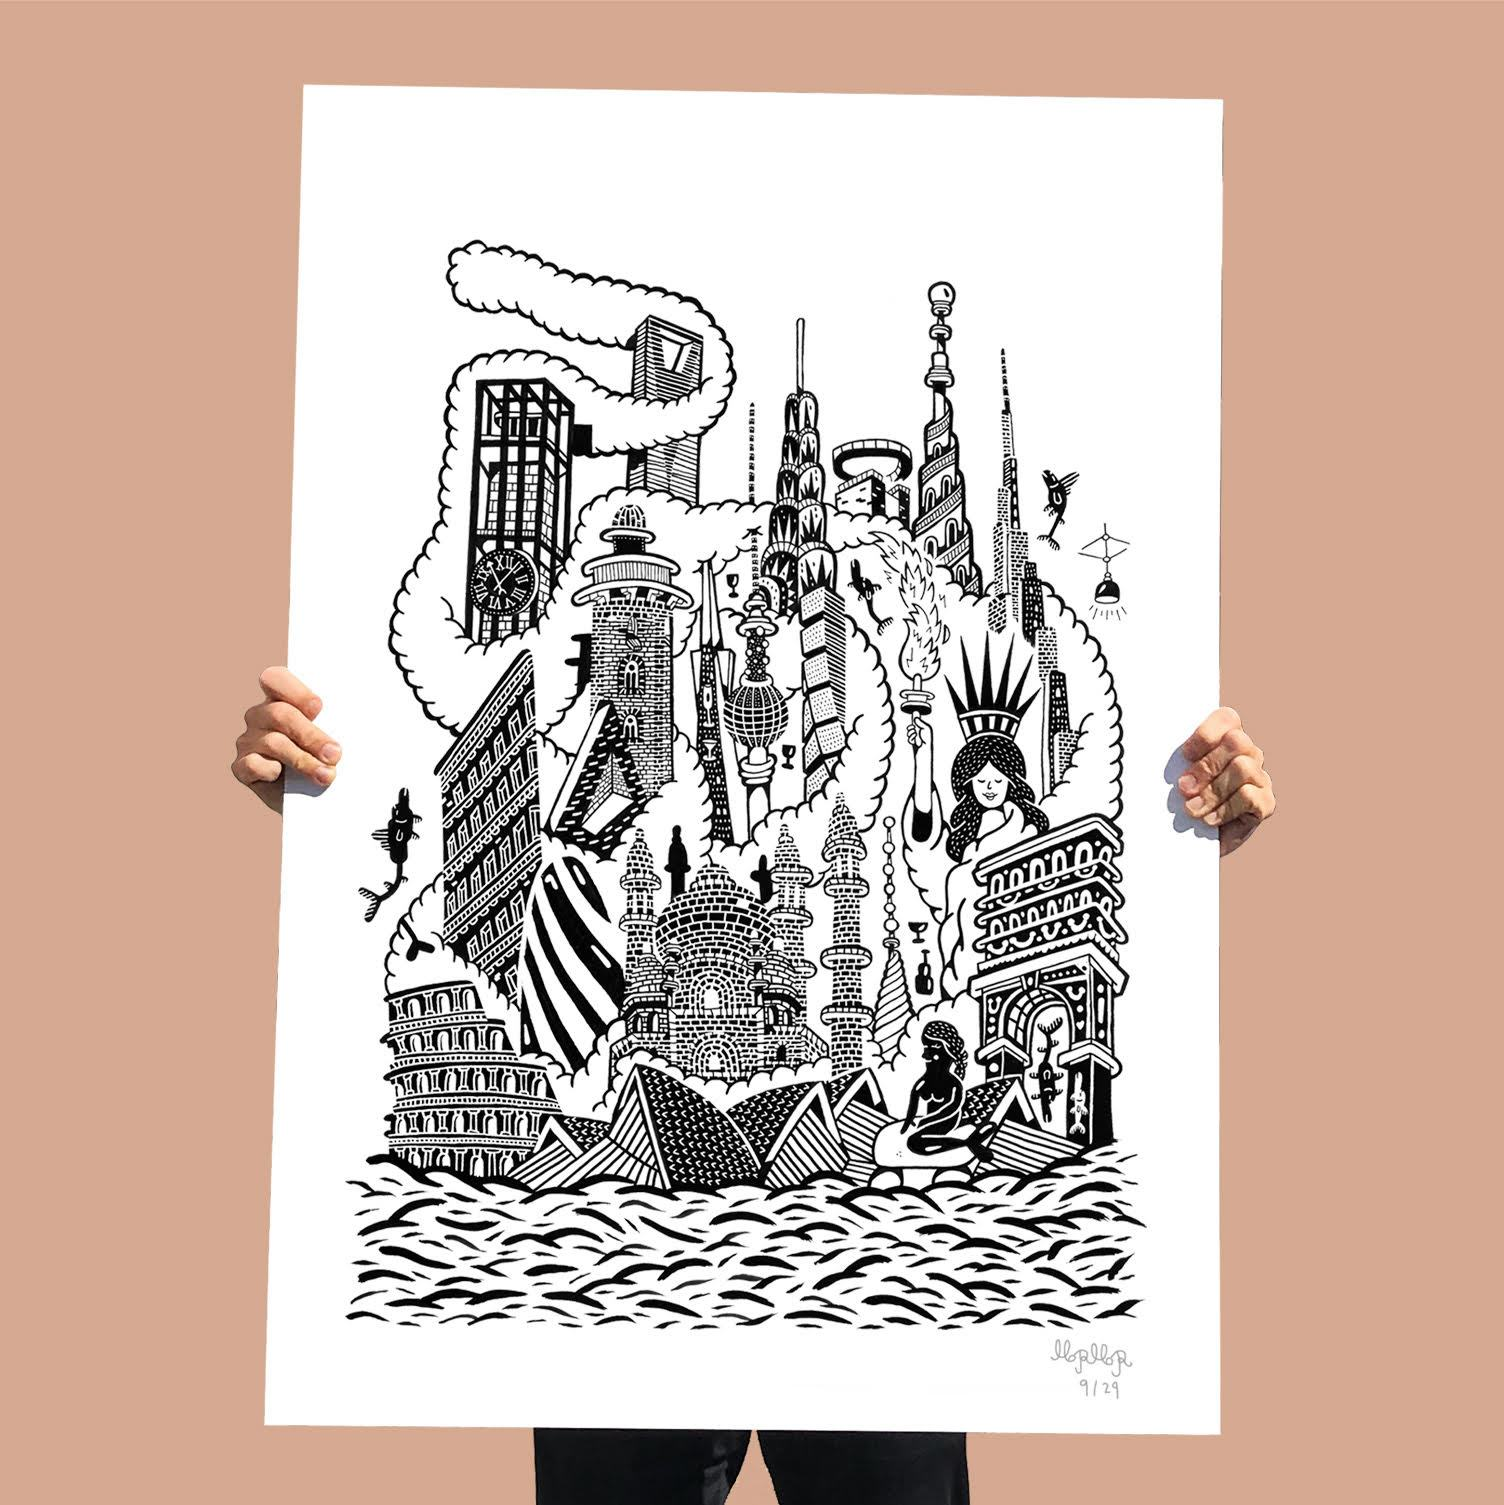 posters-prints, giclee-print, family-friendly, figurative, graphical, illustrative, landscape, pop, architecture, cartoons, children, humor, oceans, black, white, ink, paper, amusing, architectural, beach, black-and-white, buildings, celebrities, cities, contemporary-art, decorative, design, garden, interior, interior-design, modern, modern-art, Buy original high quality art. Paintings, drawings, limited edition prints & posters by talented artists.